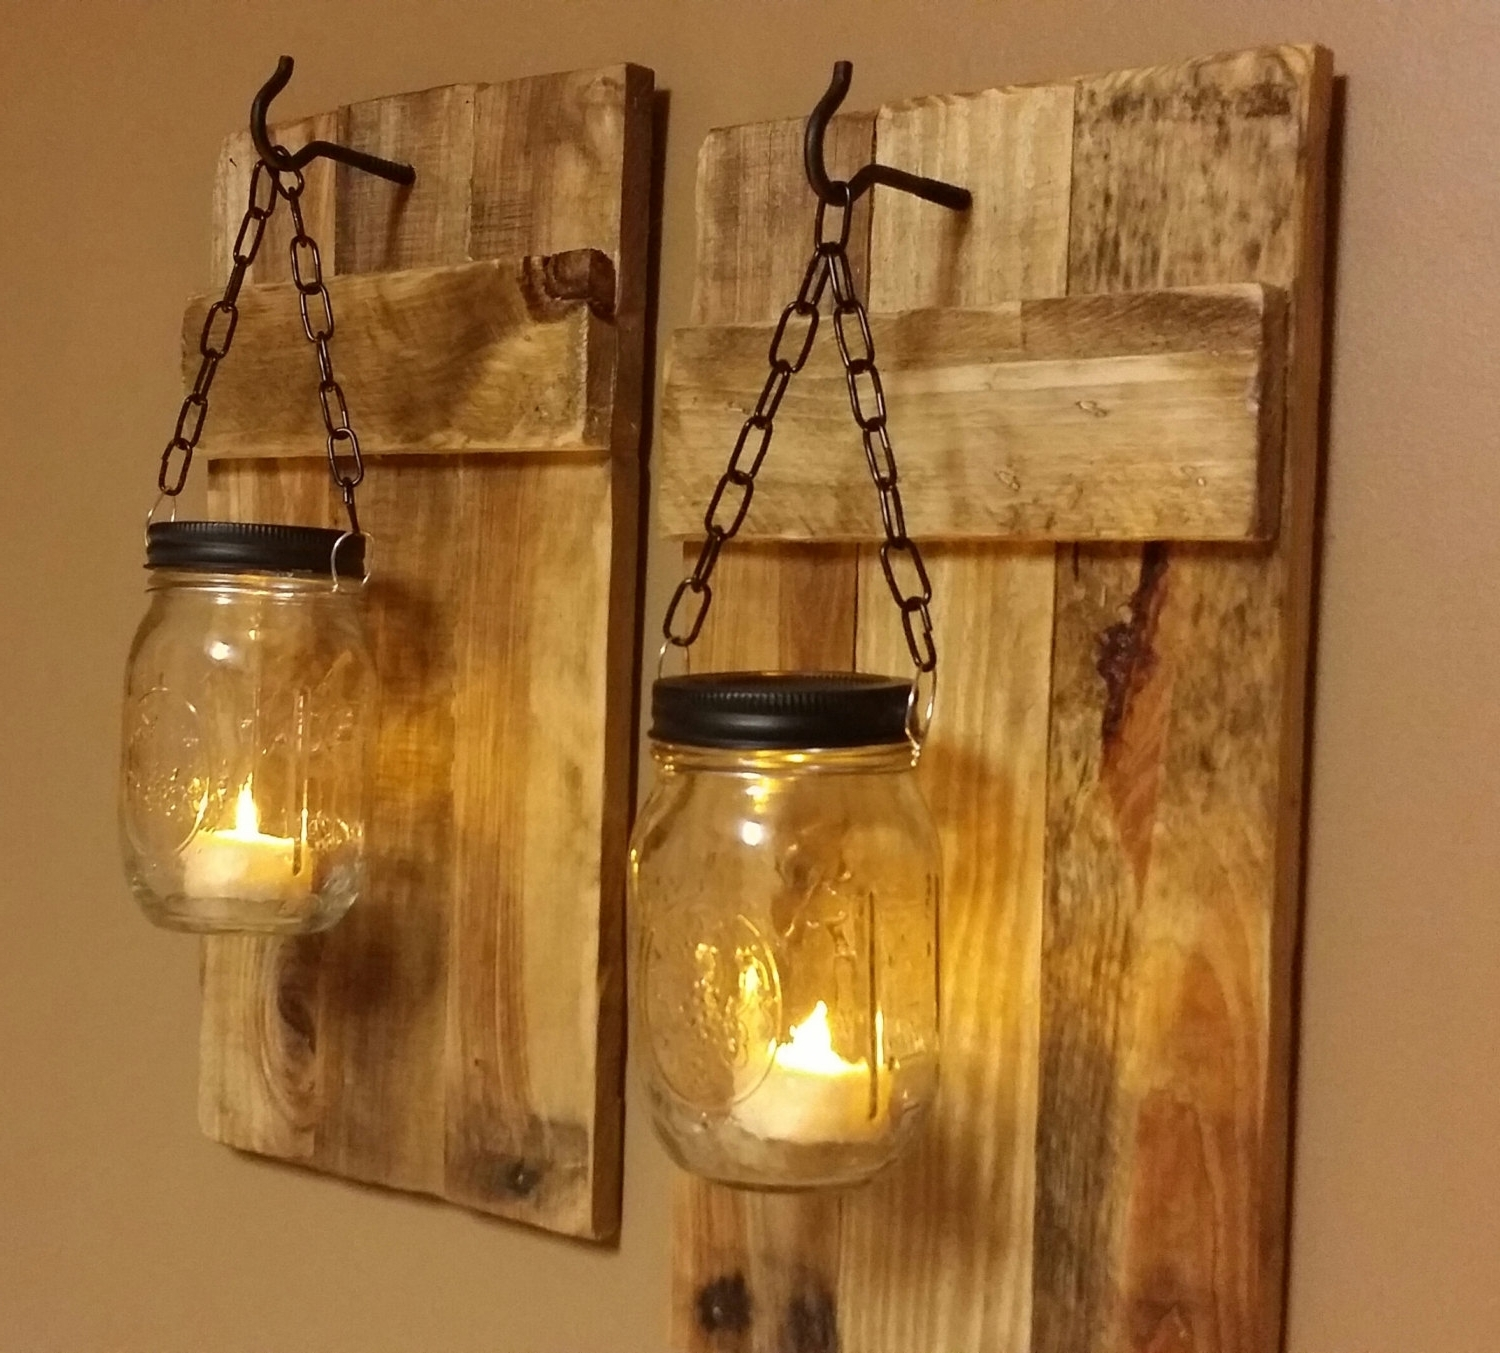 Fashionable Outdoor Wall Lighting Ideas With Diy Hanging Mason Jar Candle Pertaining To Outdoor Jar Lanterns (View 5 of 20)